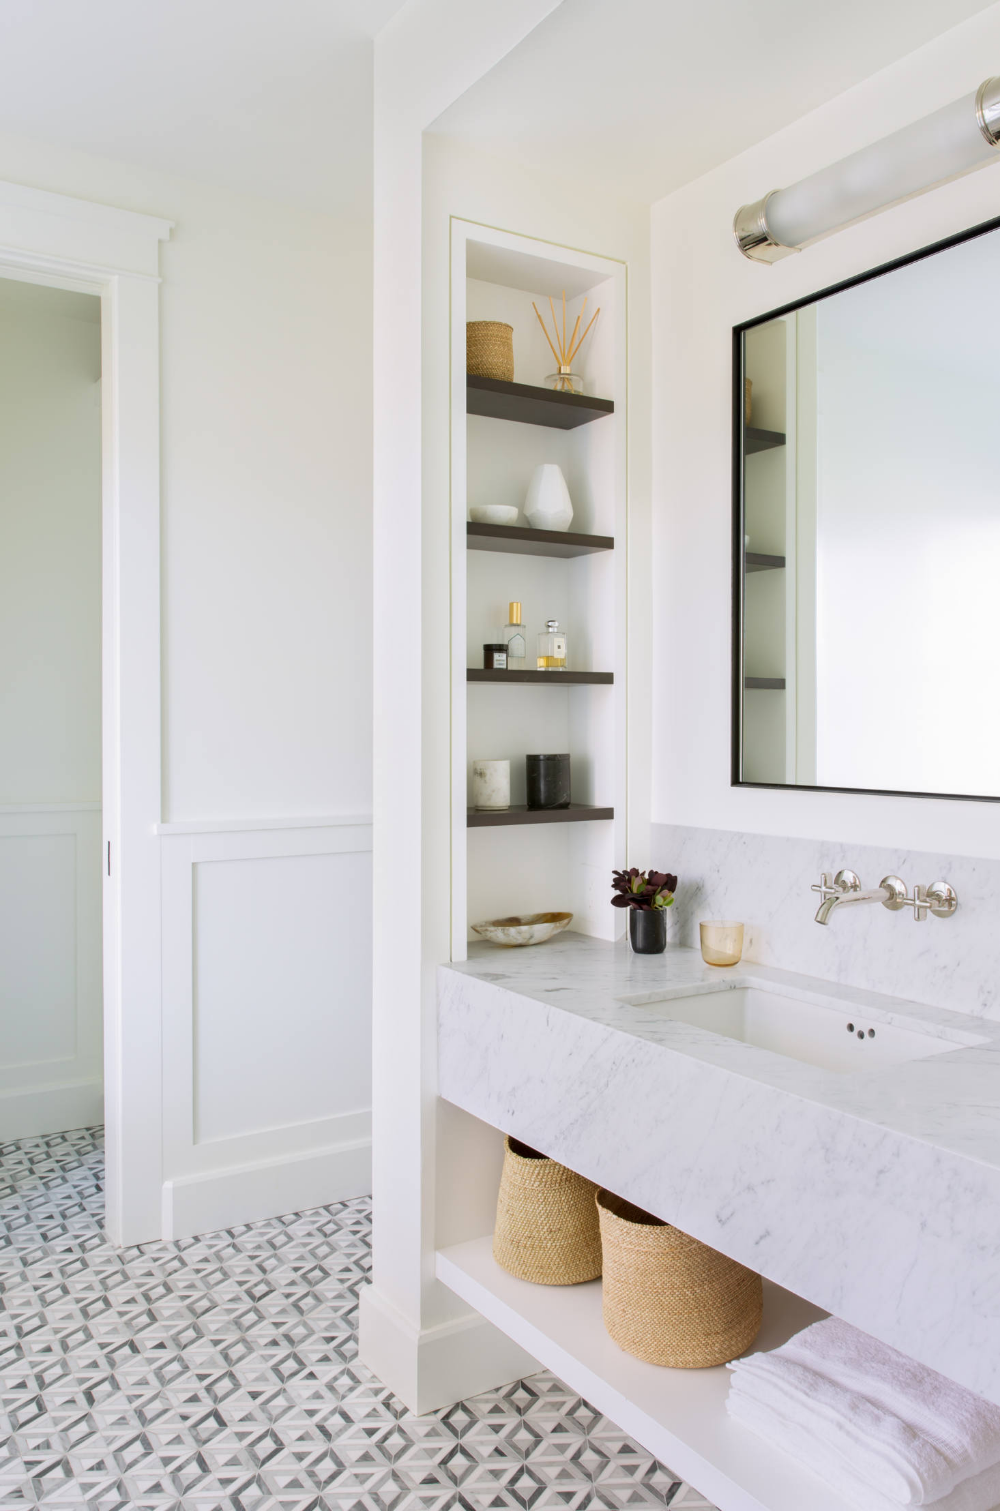 Mill Valley Makeover A Historic California House Remodel With Traditional Modern Flair Bathroom Interior Bathroom Design Bathrooms Remodel